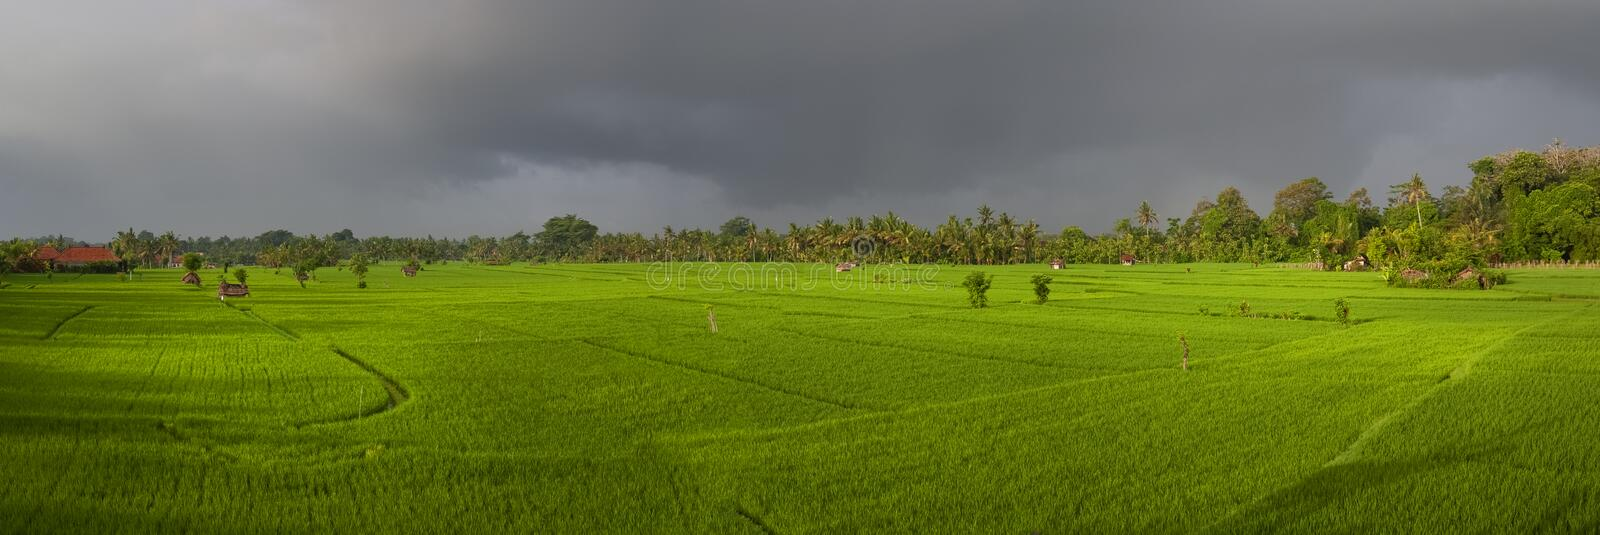 Panoramic View of an Ubud, Bali, Rice Field Before a Rain Storm. royalty free stock photos